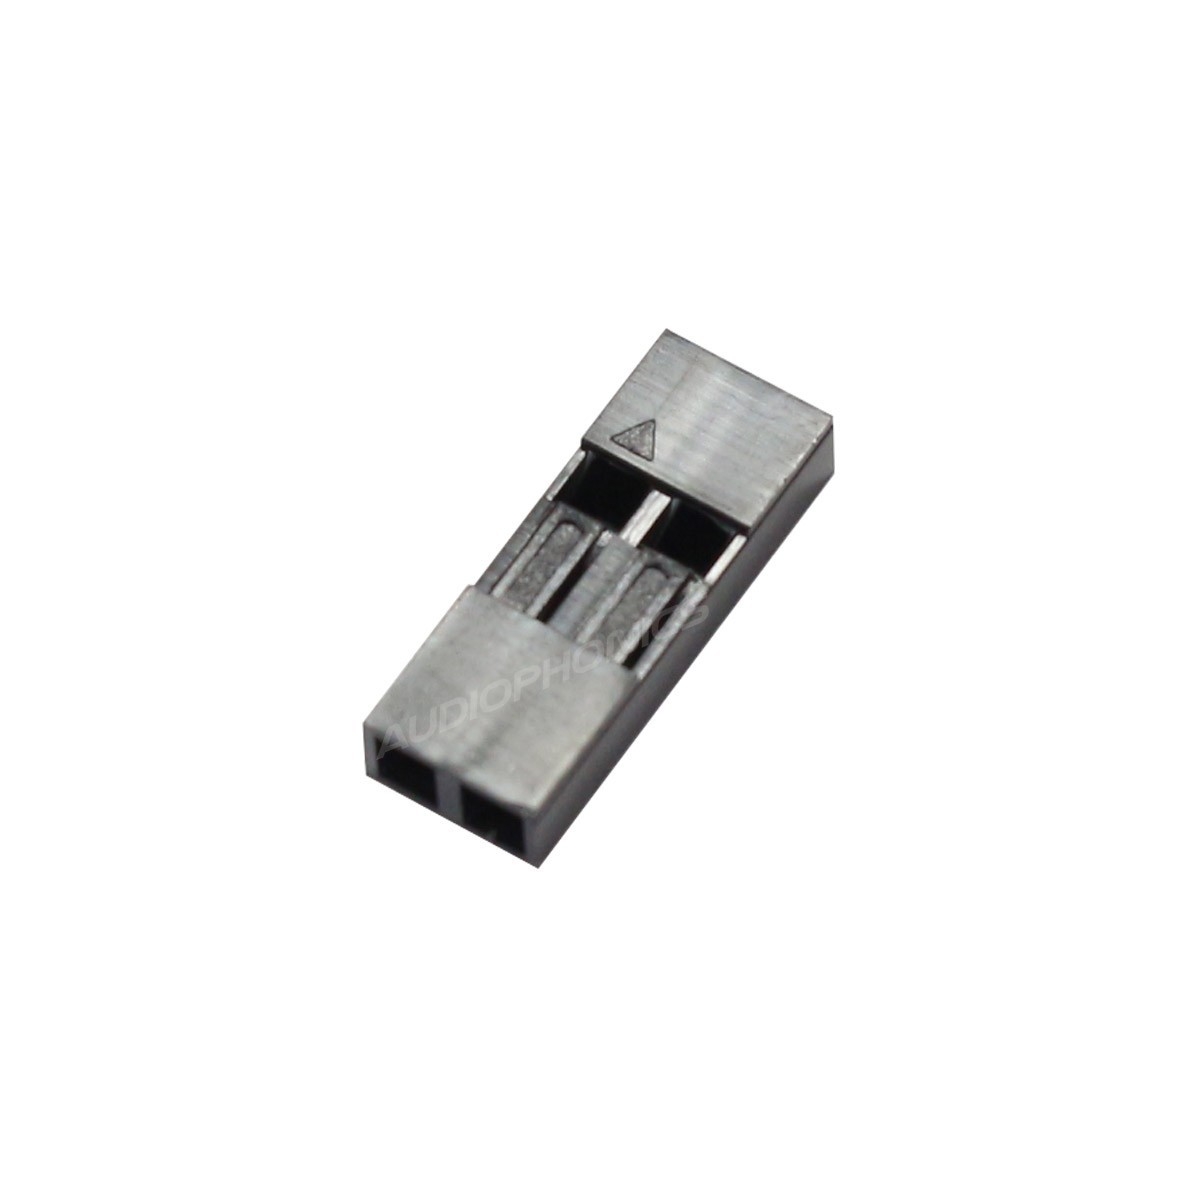 AMP 2.54mm Female Casing 2 Channels Gray (x5)